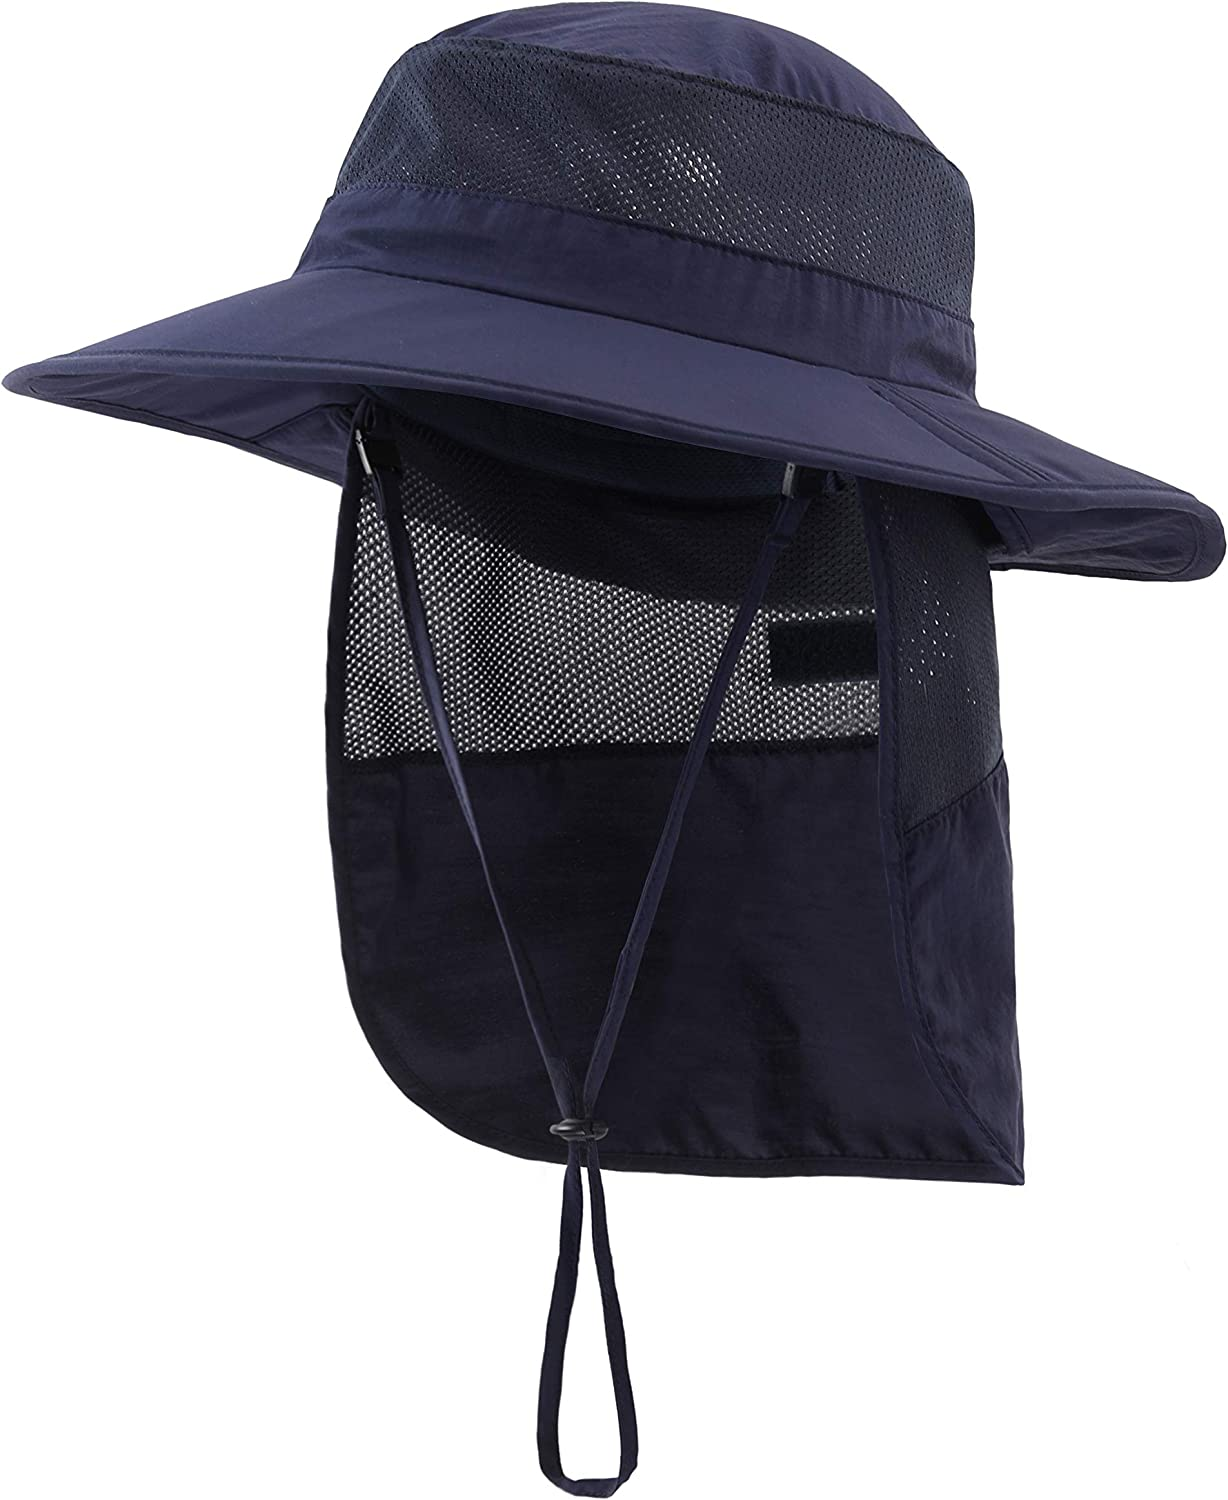 Home Prefer Outdoor UPF50+ Kids Sun Hat Wide Brim Fishing Hat with Neck Flap